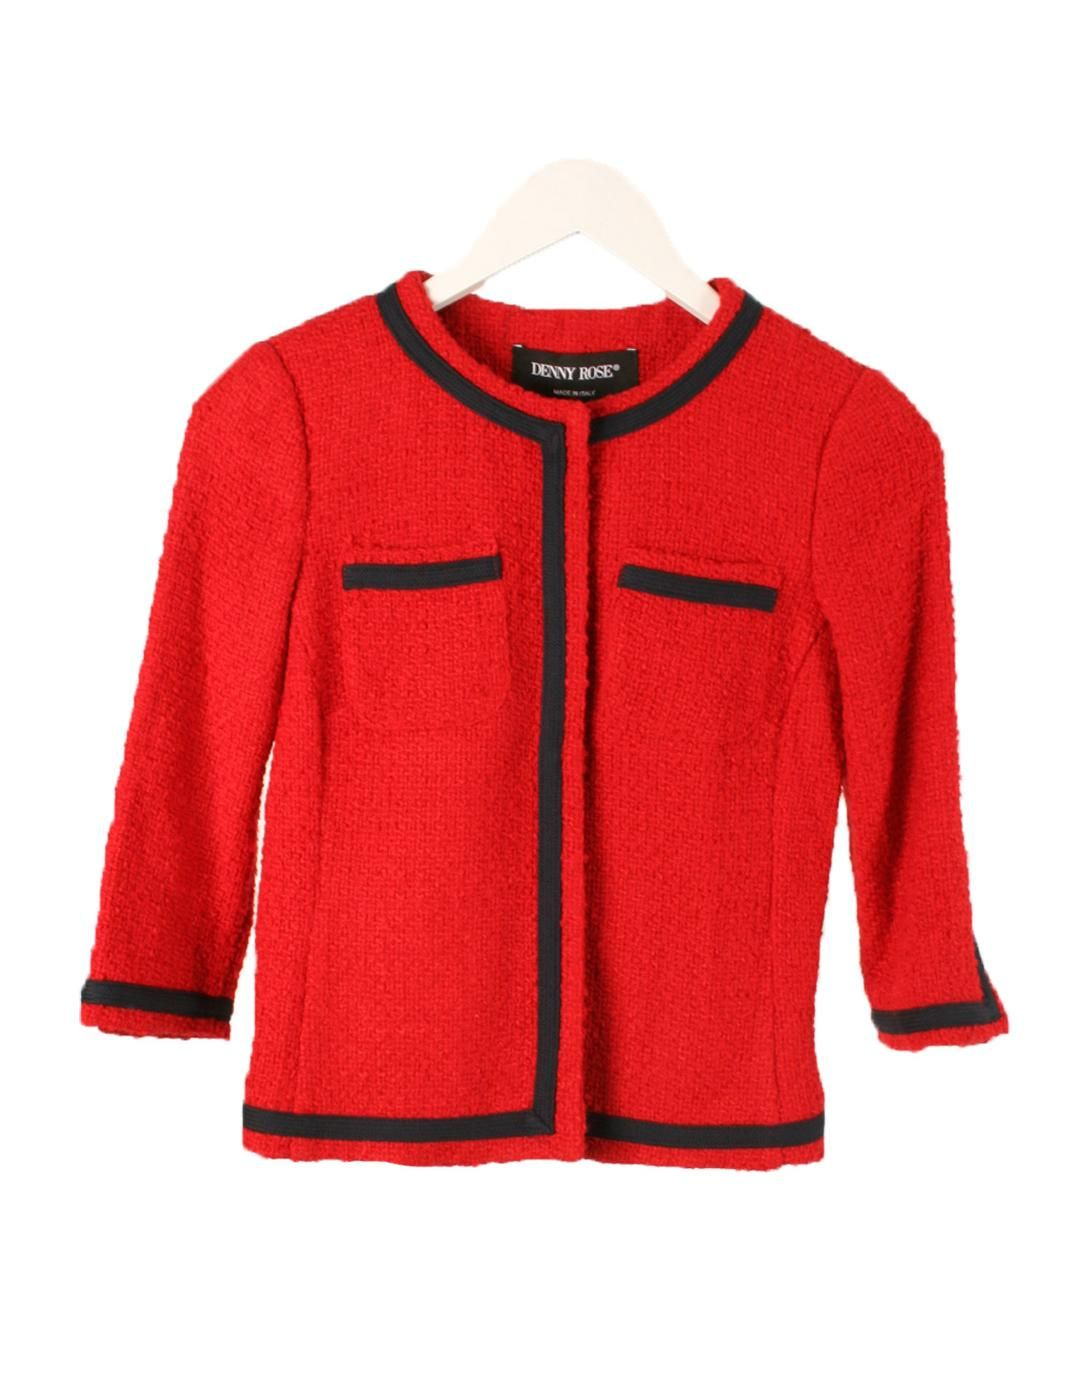 Fever Tweed Roja Chaqueta Denny Rose Red Iciqz Y 5tx76qpw